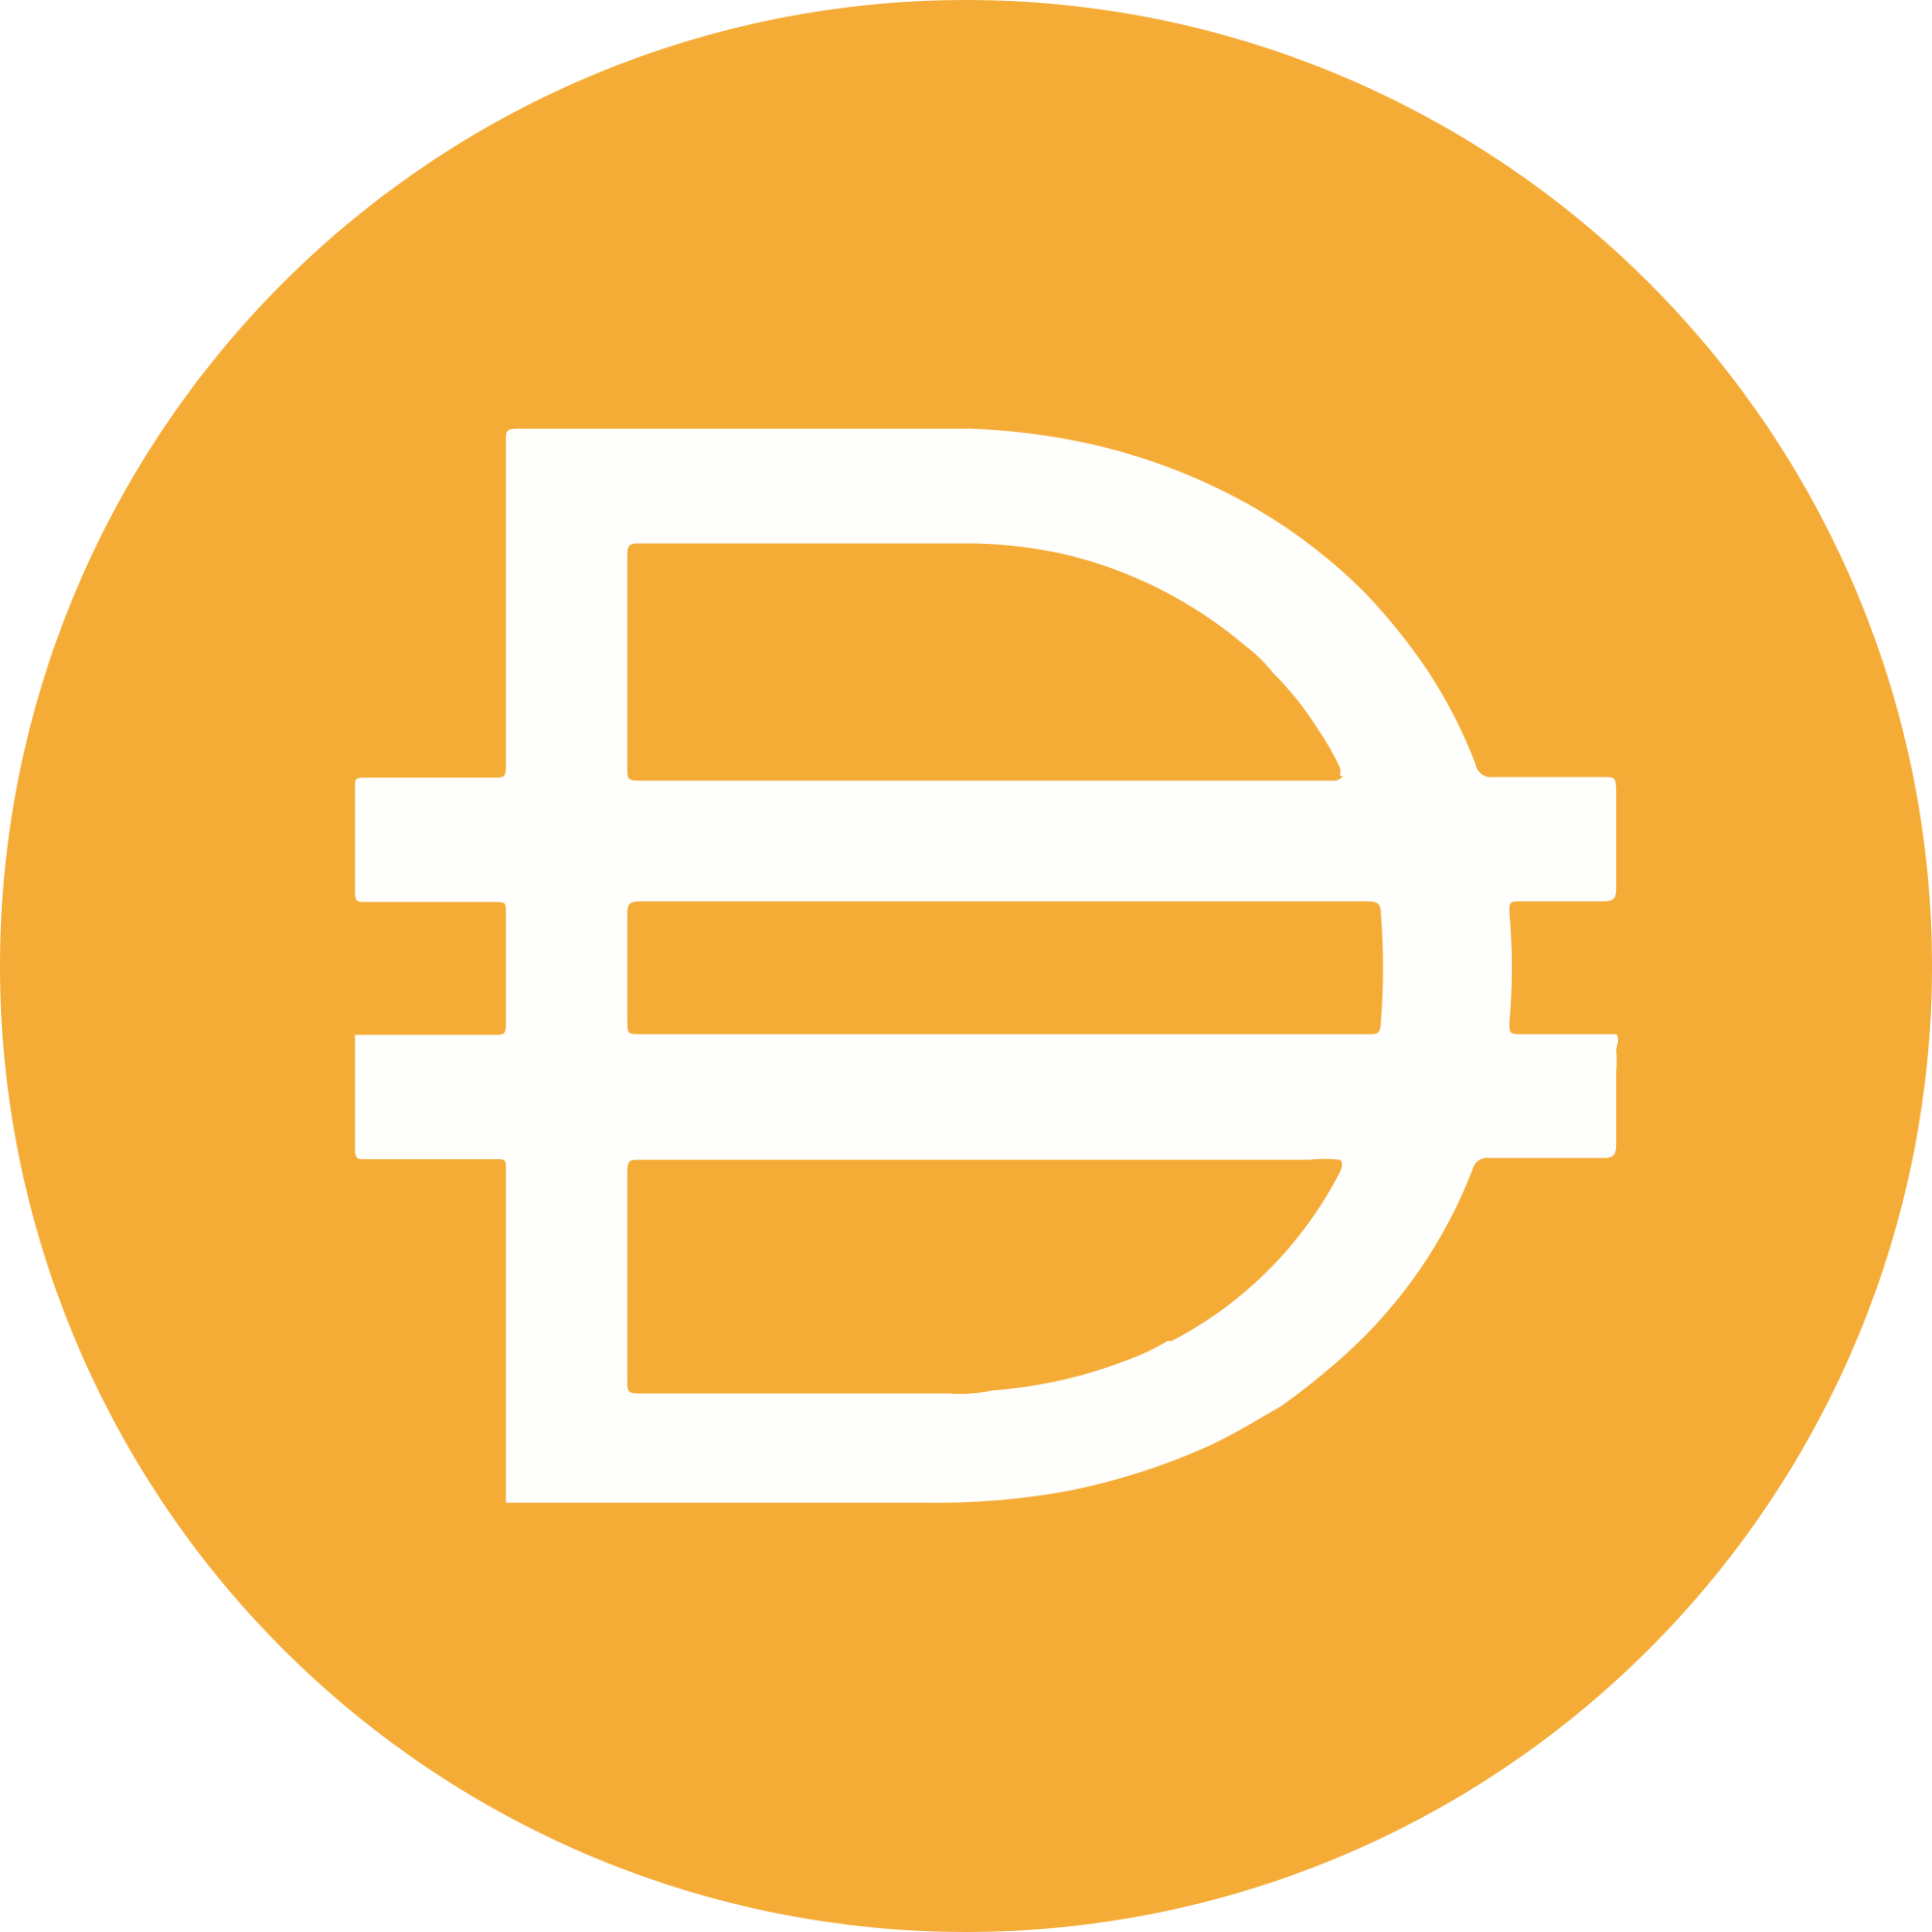 DAI stablecoin co to je